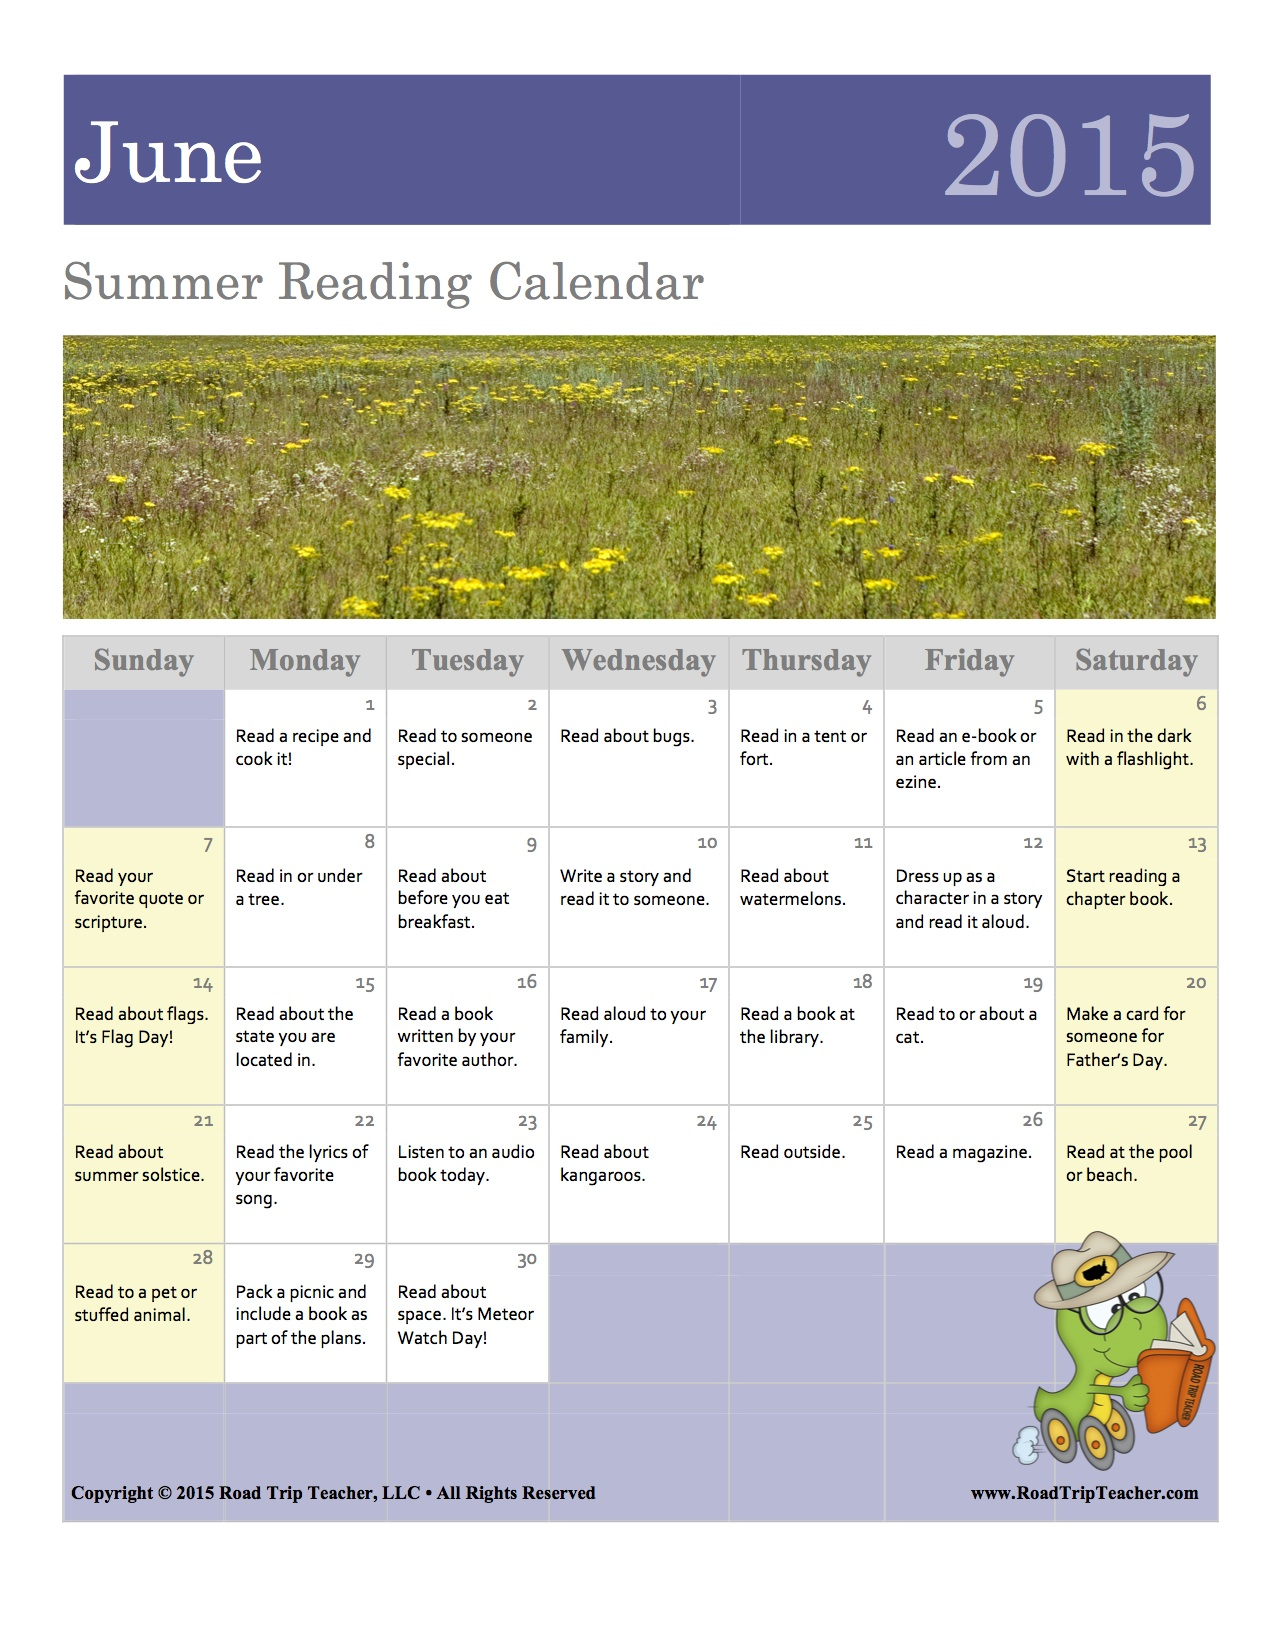 June Calendar Girl Read : June reading calendar family educational resources